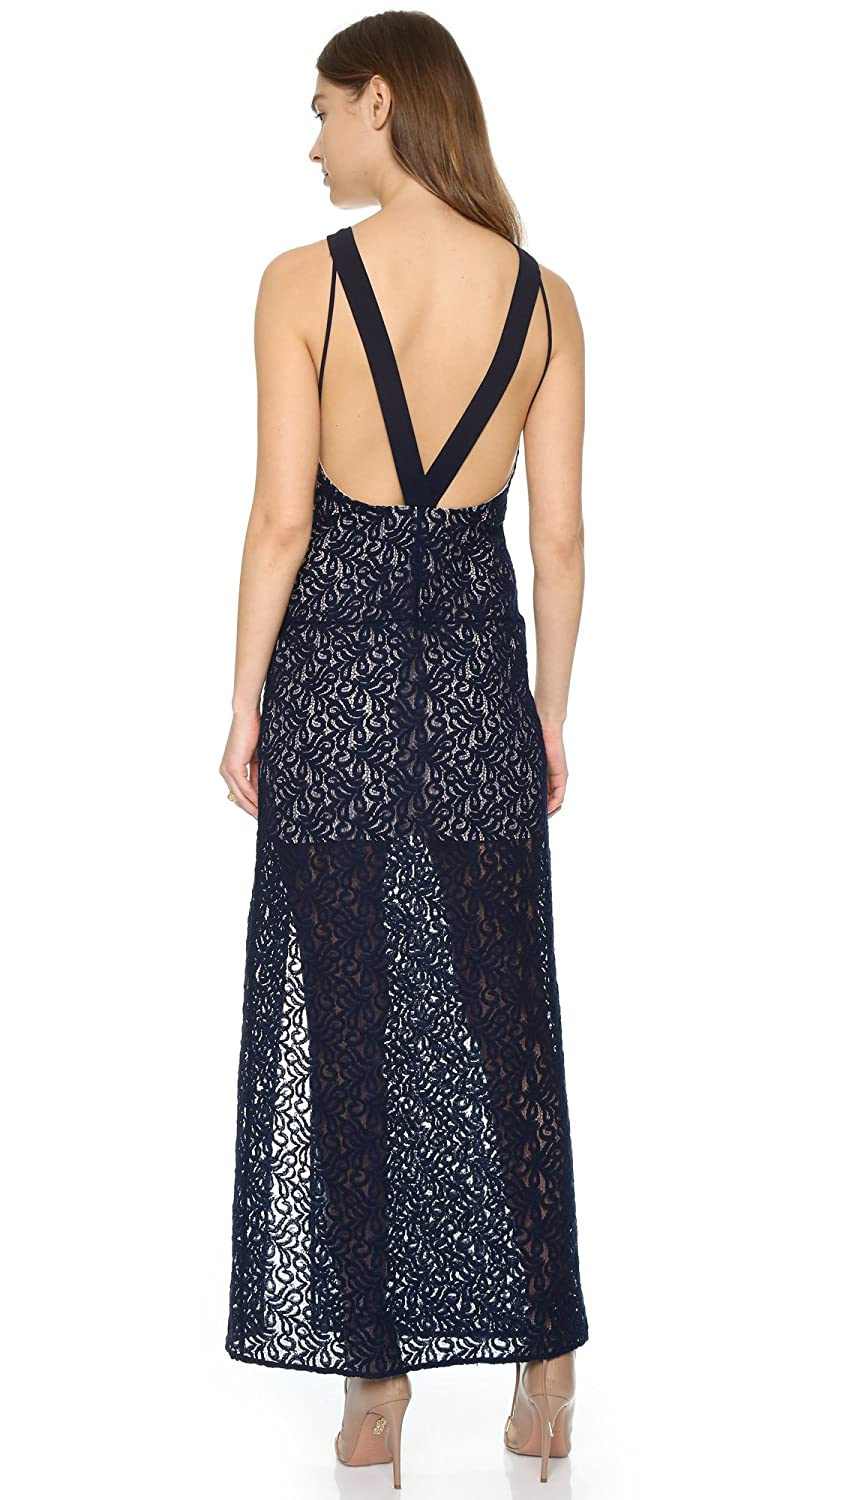 Free People Simply Lace Column Dress at Amazon Women\'s Clothing store: